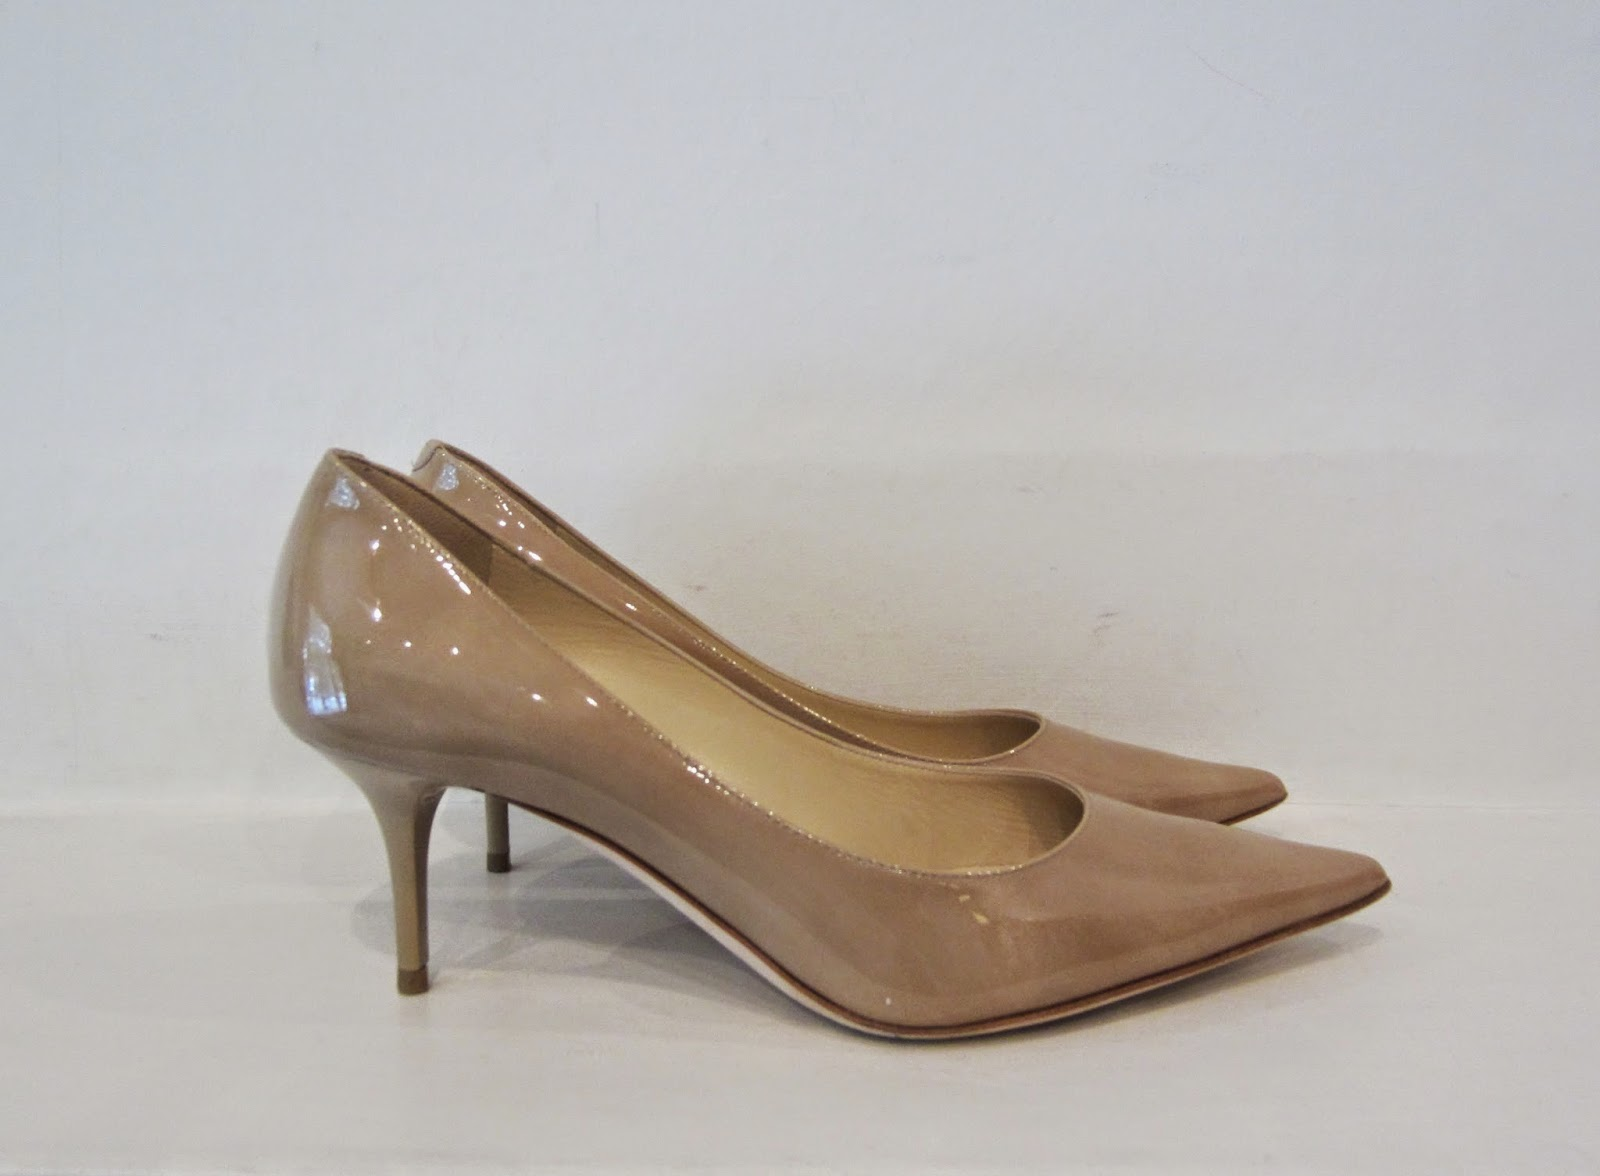 Jimmy Choo 'Aurora' Nude Patent Leather Kitten Heel Pumps